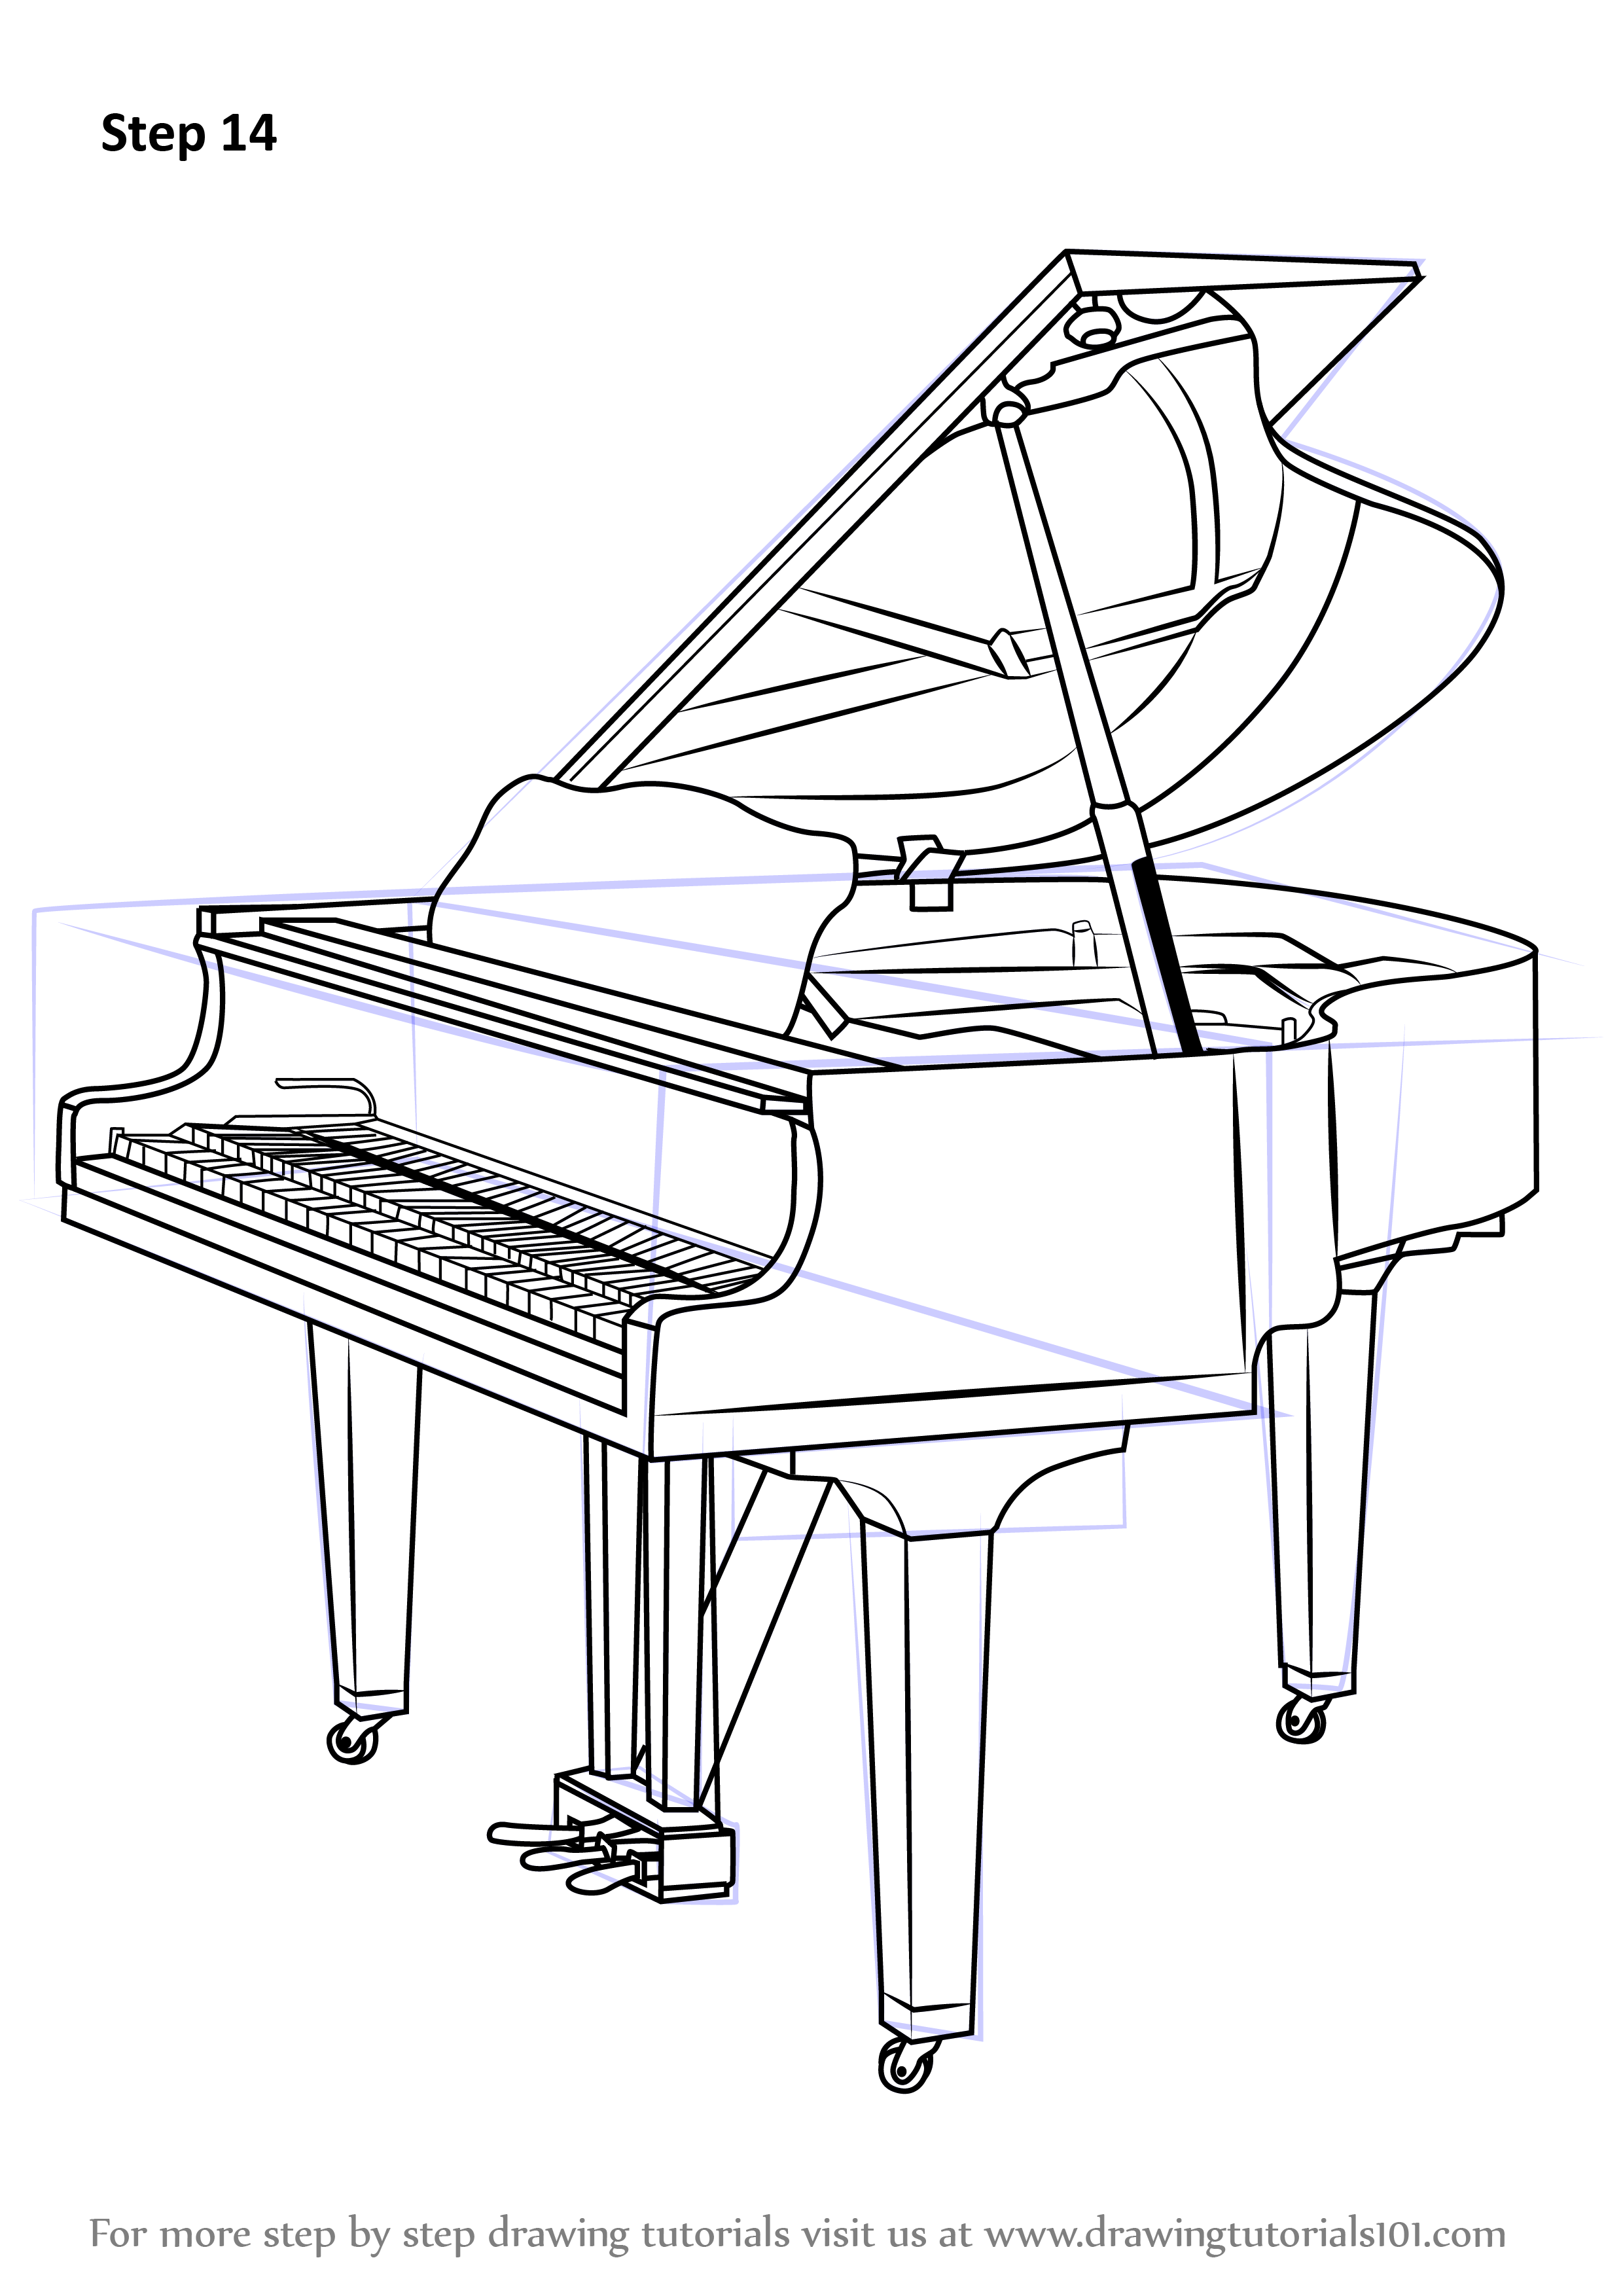 Learn How to Draw a Grand piano